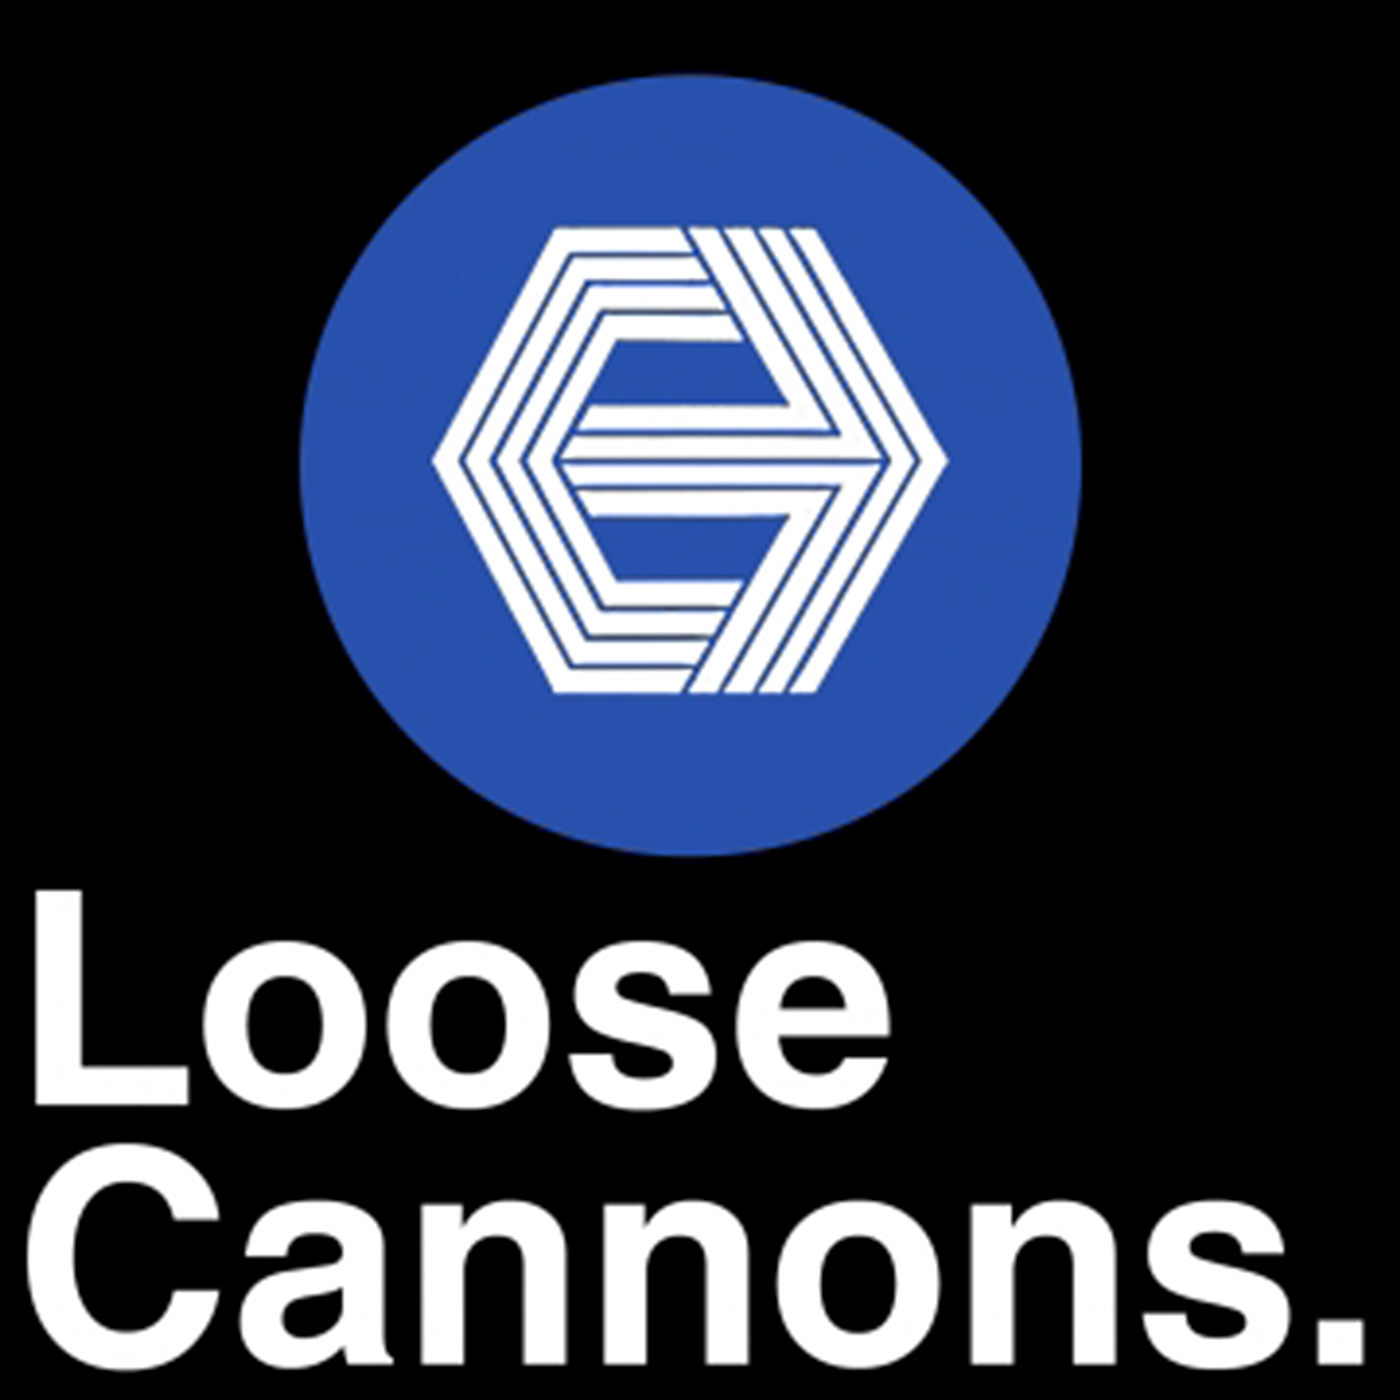 loose cannons streaming